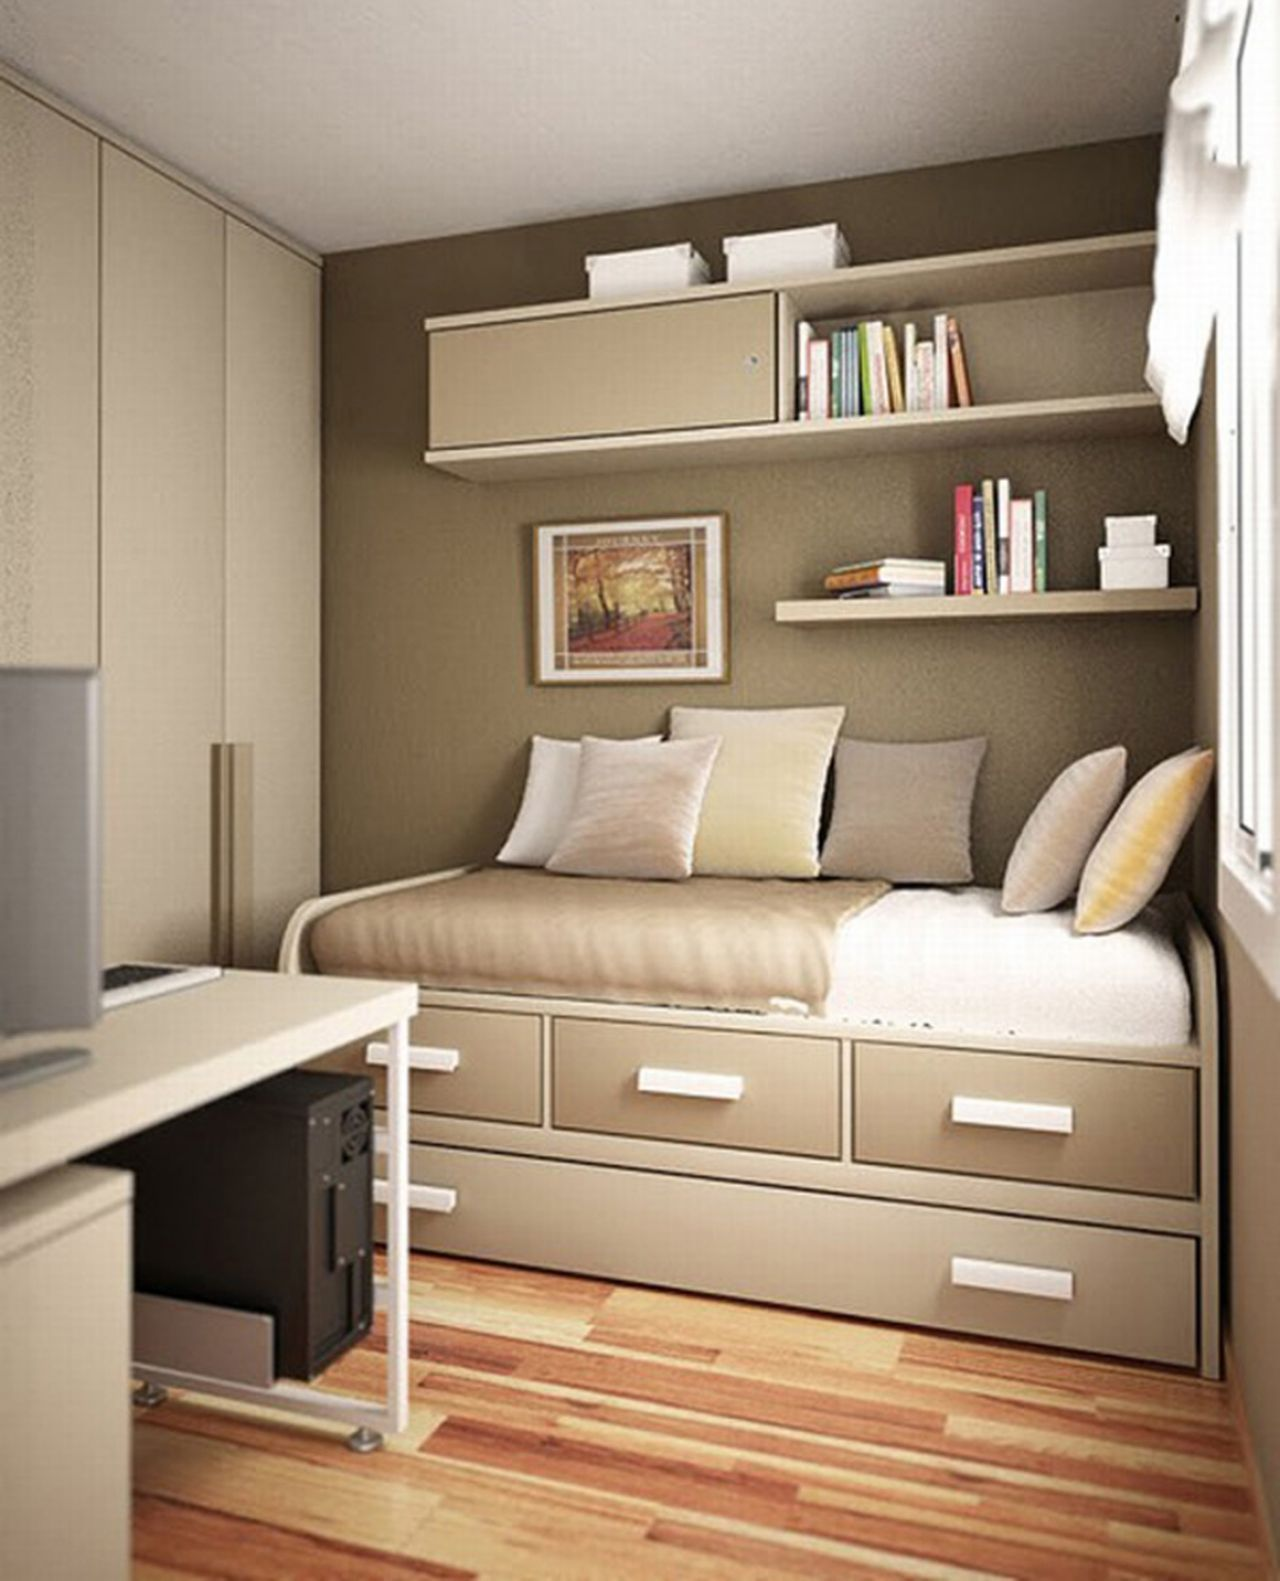 Top Superb Wardrobes For Small Rooms Single Bed Designs Space ..